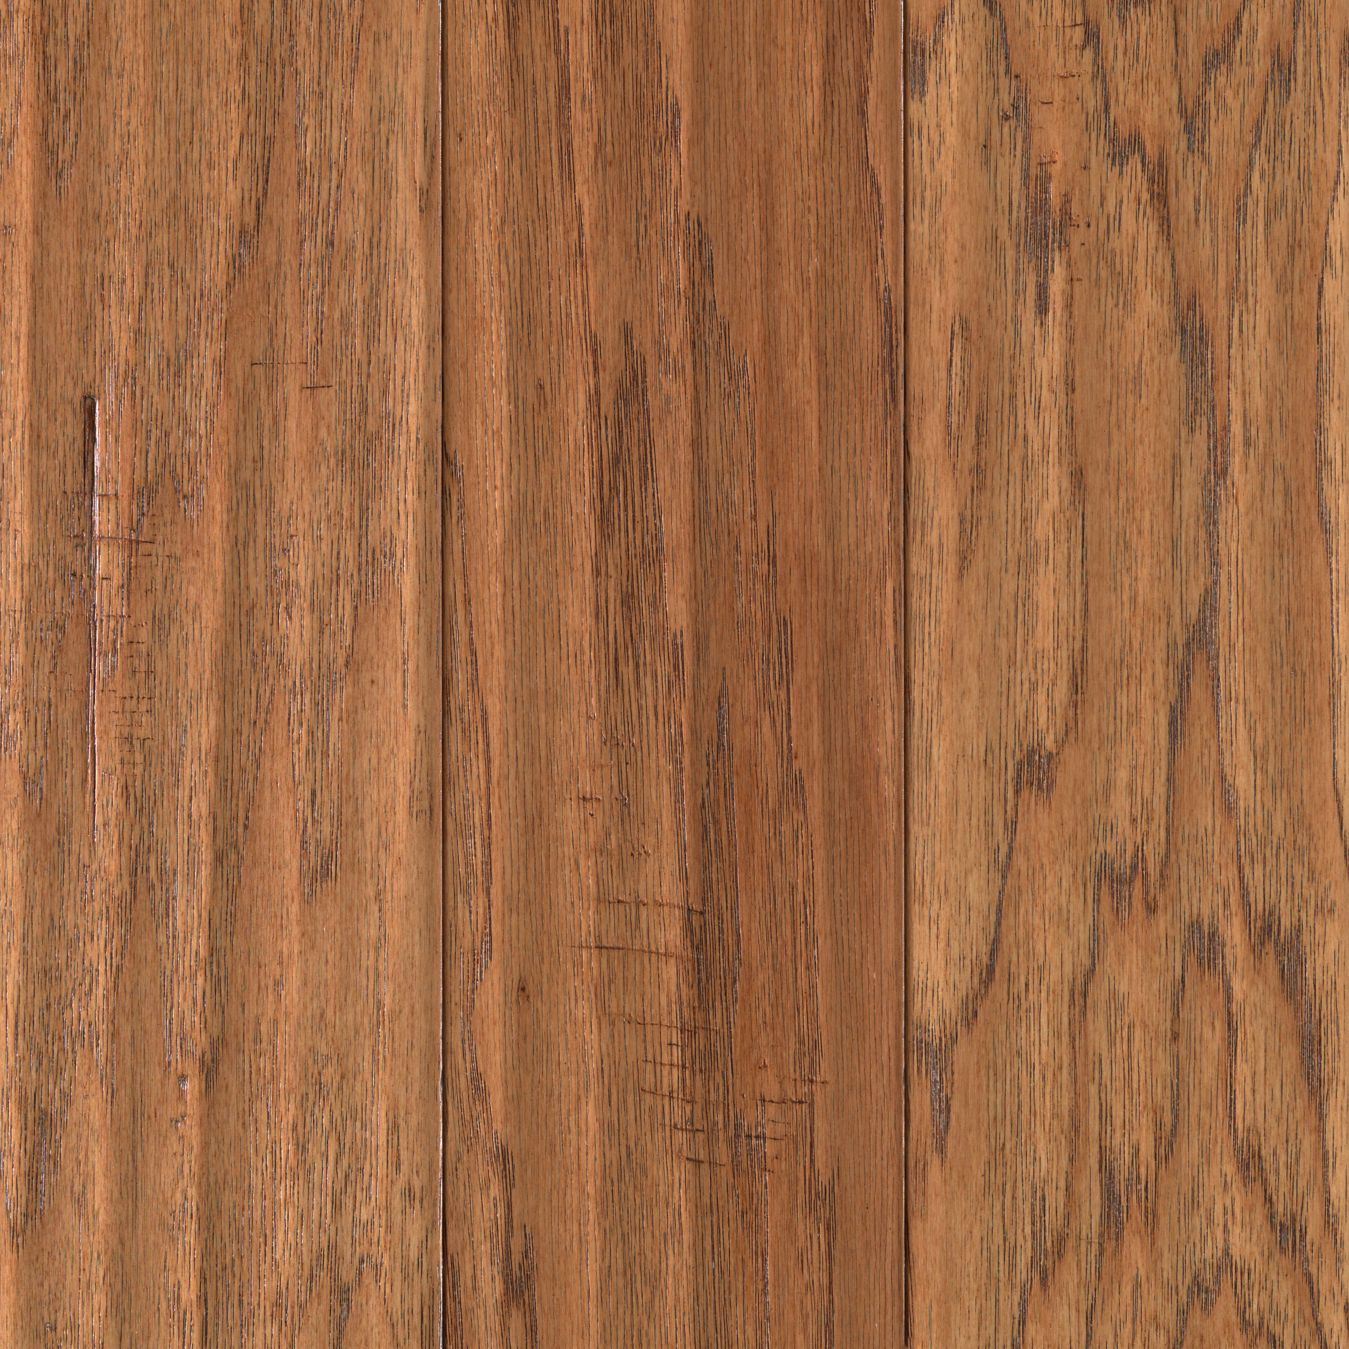 Hardwood Brandymill Uniclic Hickory Copper 01 main image